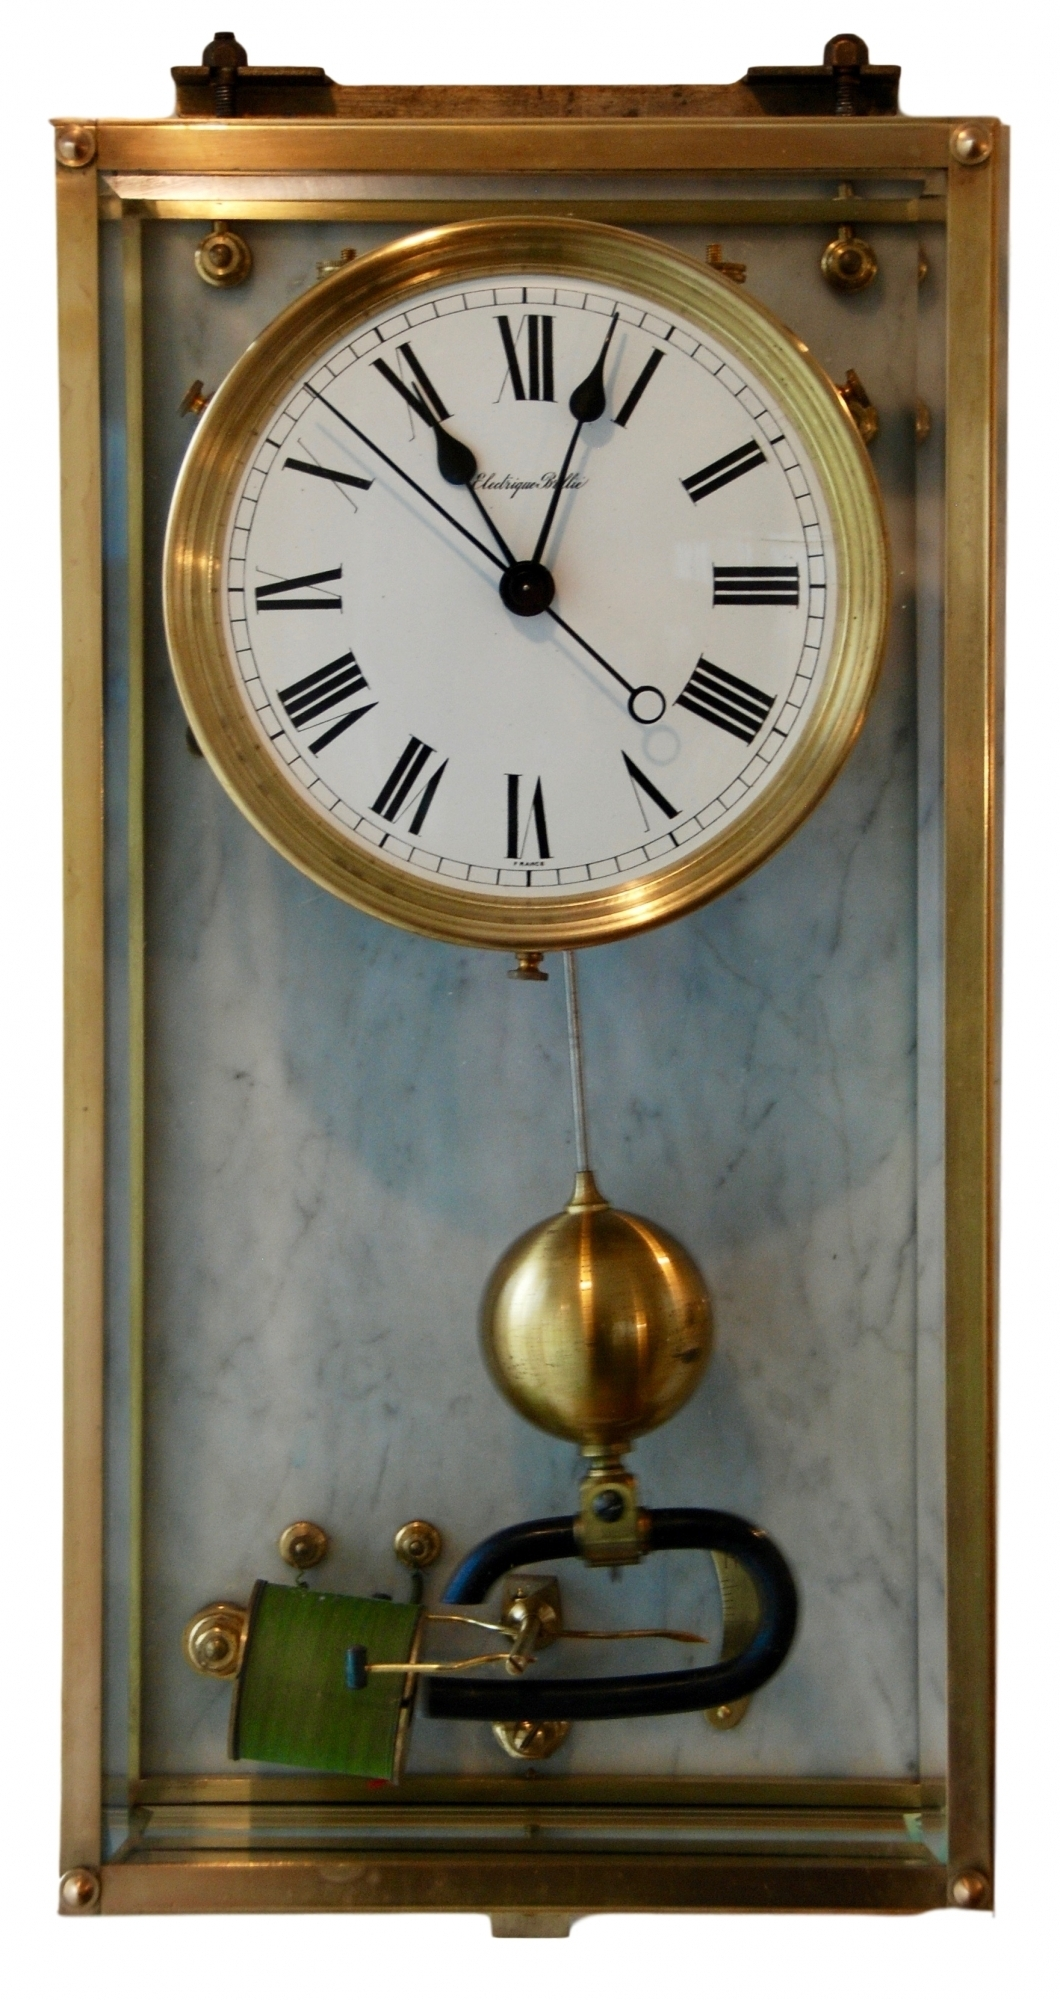 W44 Brass Art Deco Electrique Brillié Wall Clock | Artlistings For Most Recently Released Art Deco Wall Clock (View 20 of 20)